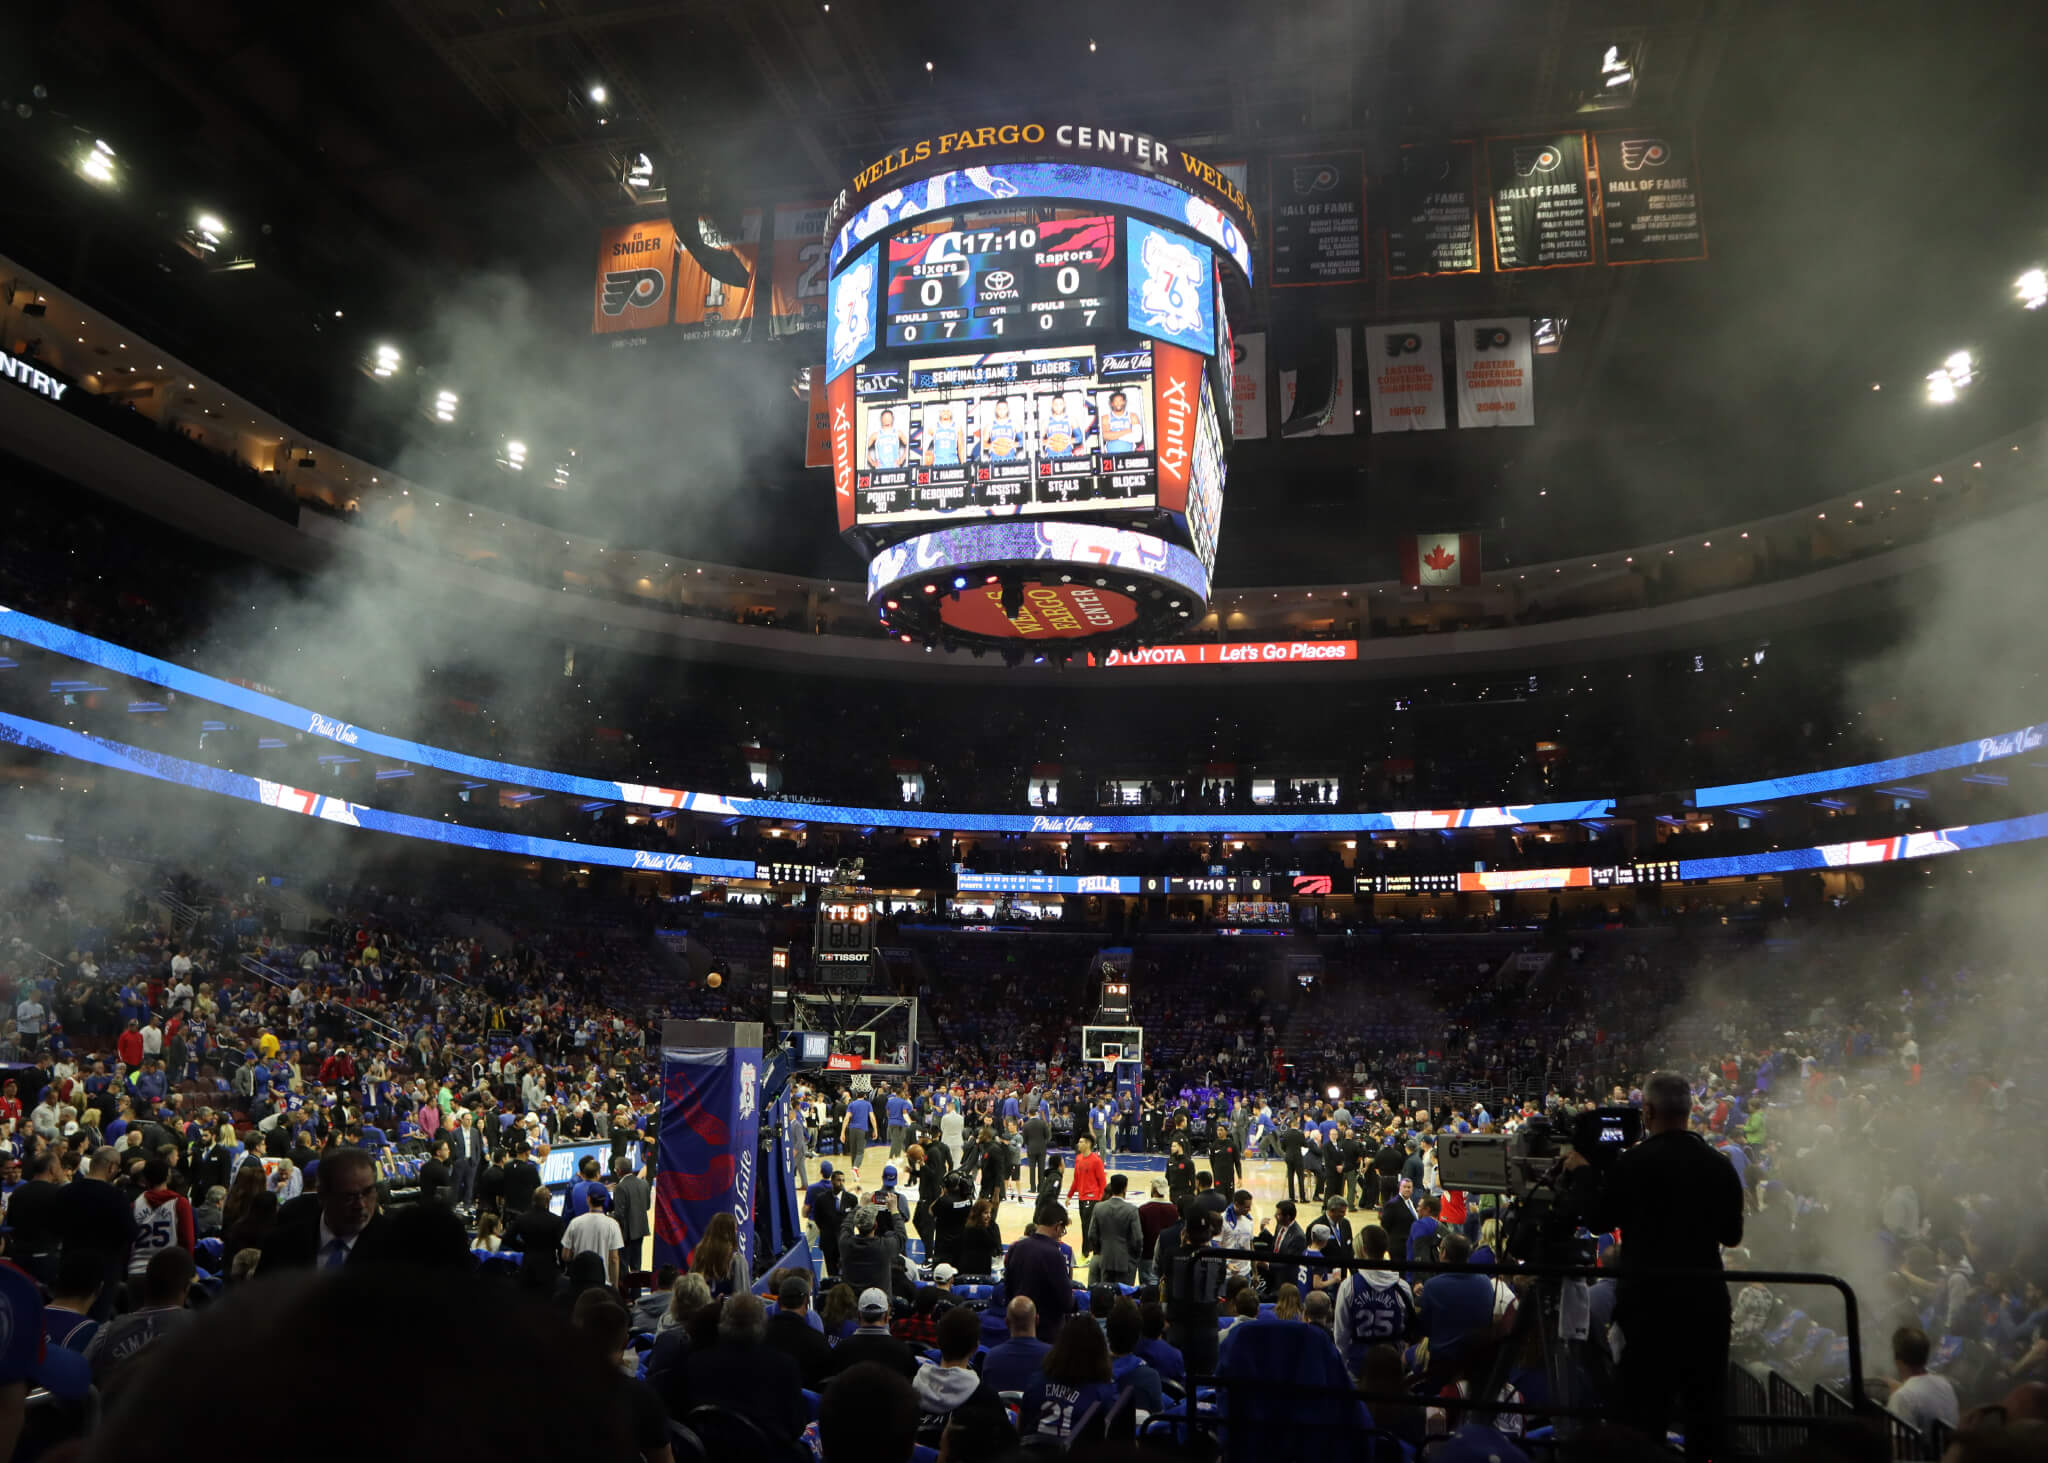 Where do the Philadelphia 76ers play basketball?